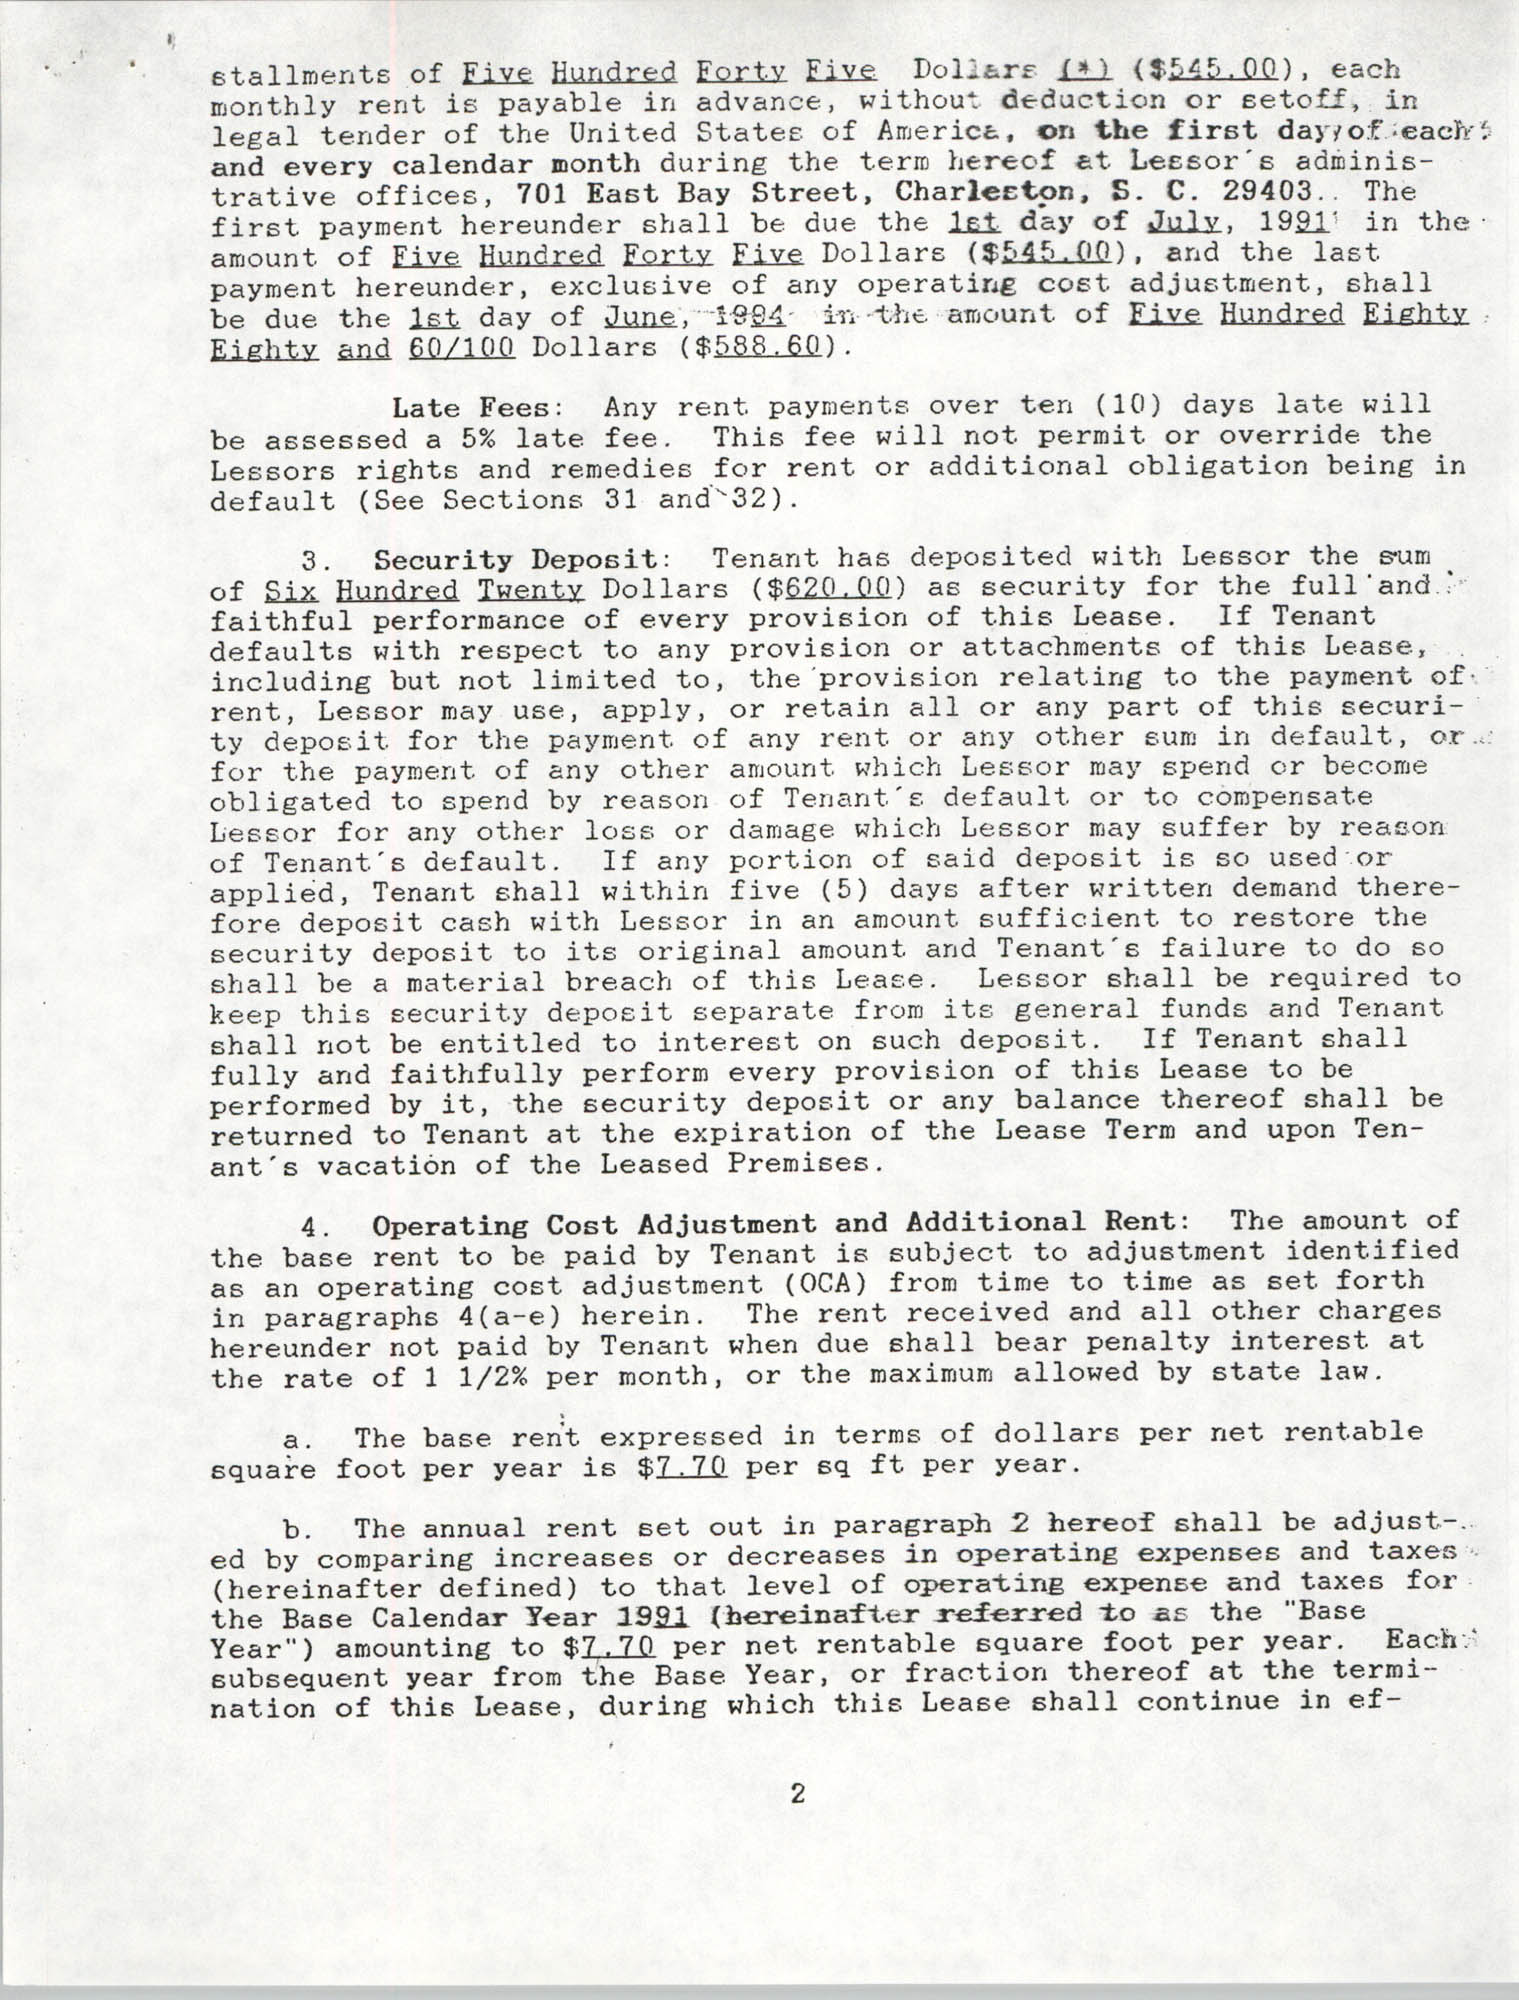 Charleston Branch of the NAACP Leasing Agreement, June 1991 to June 1994, Page 2